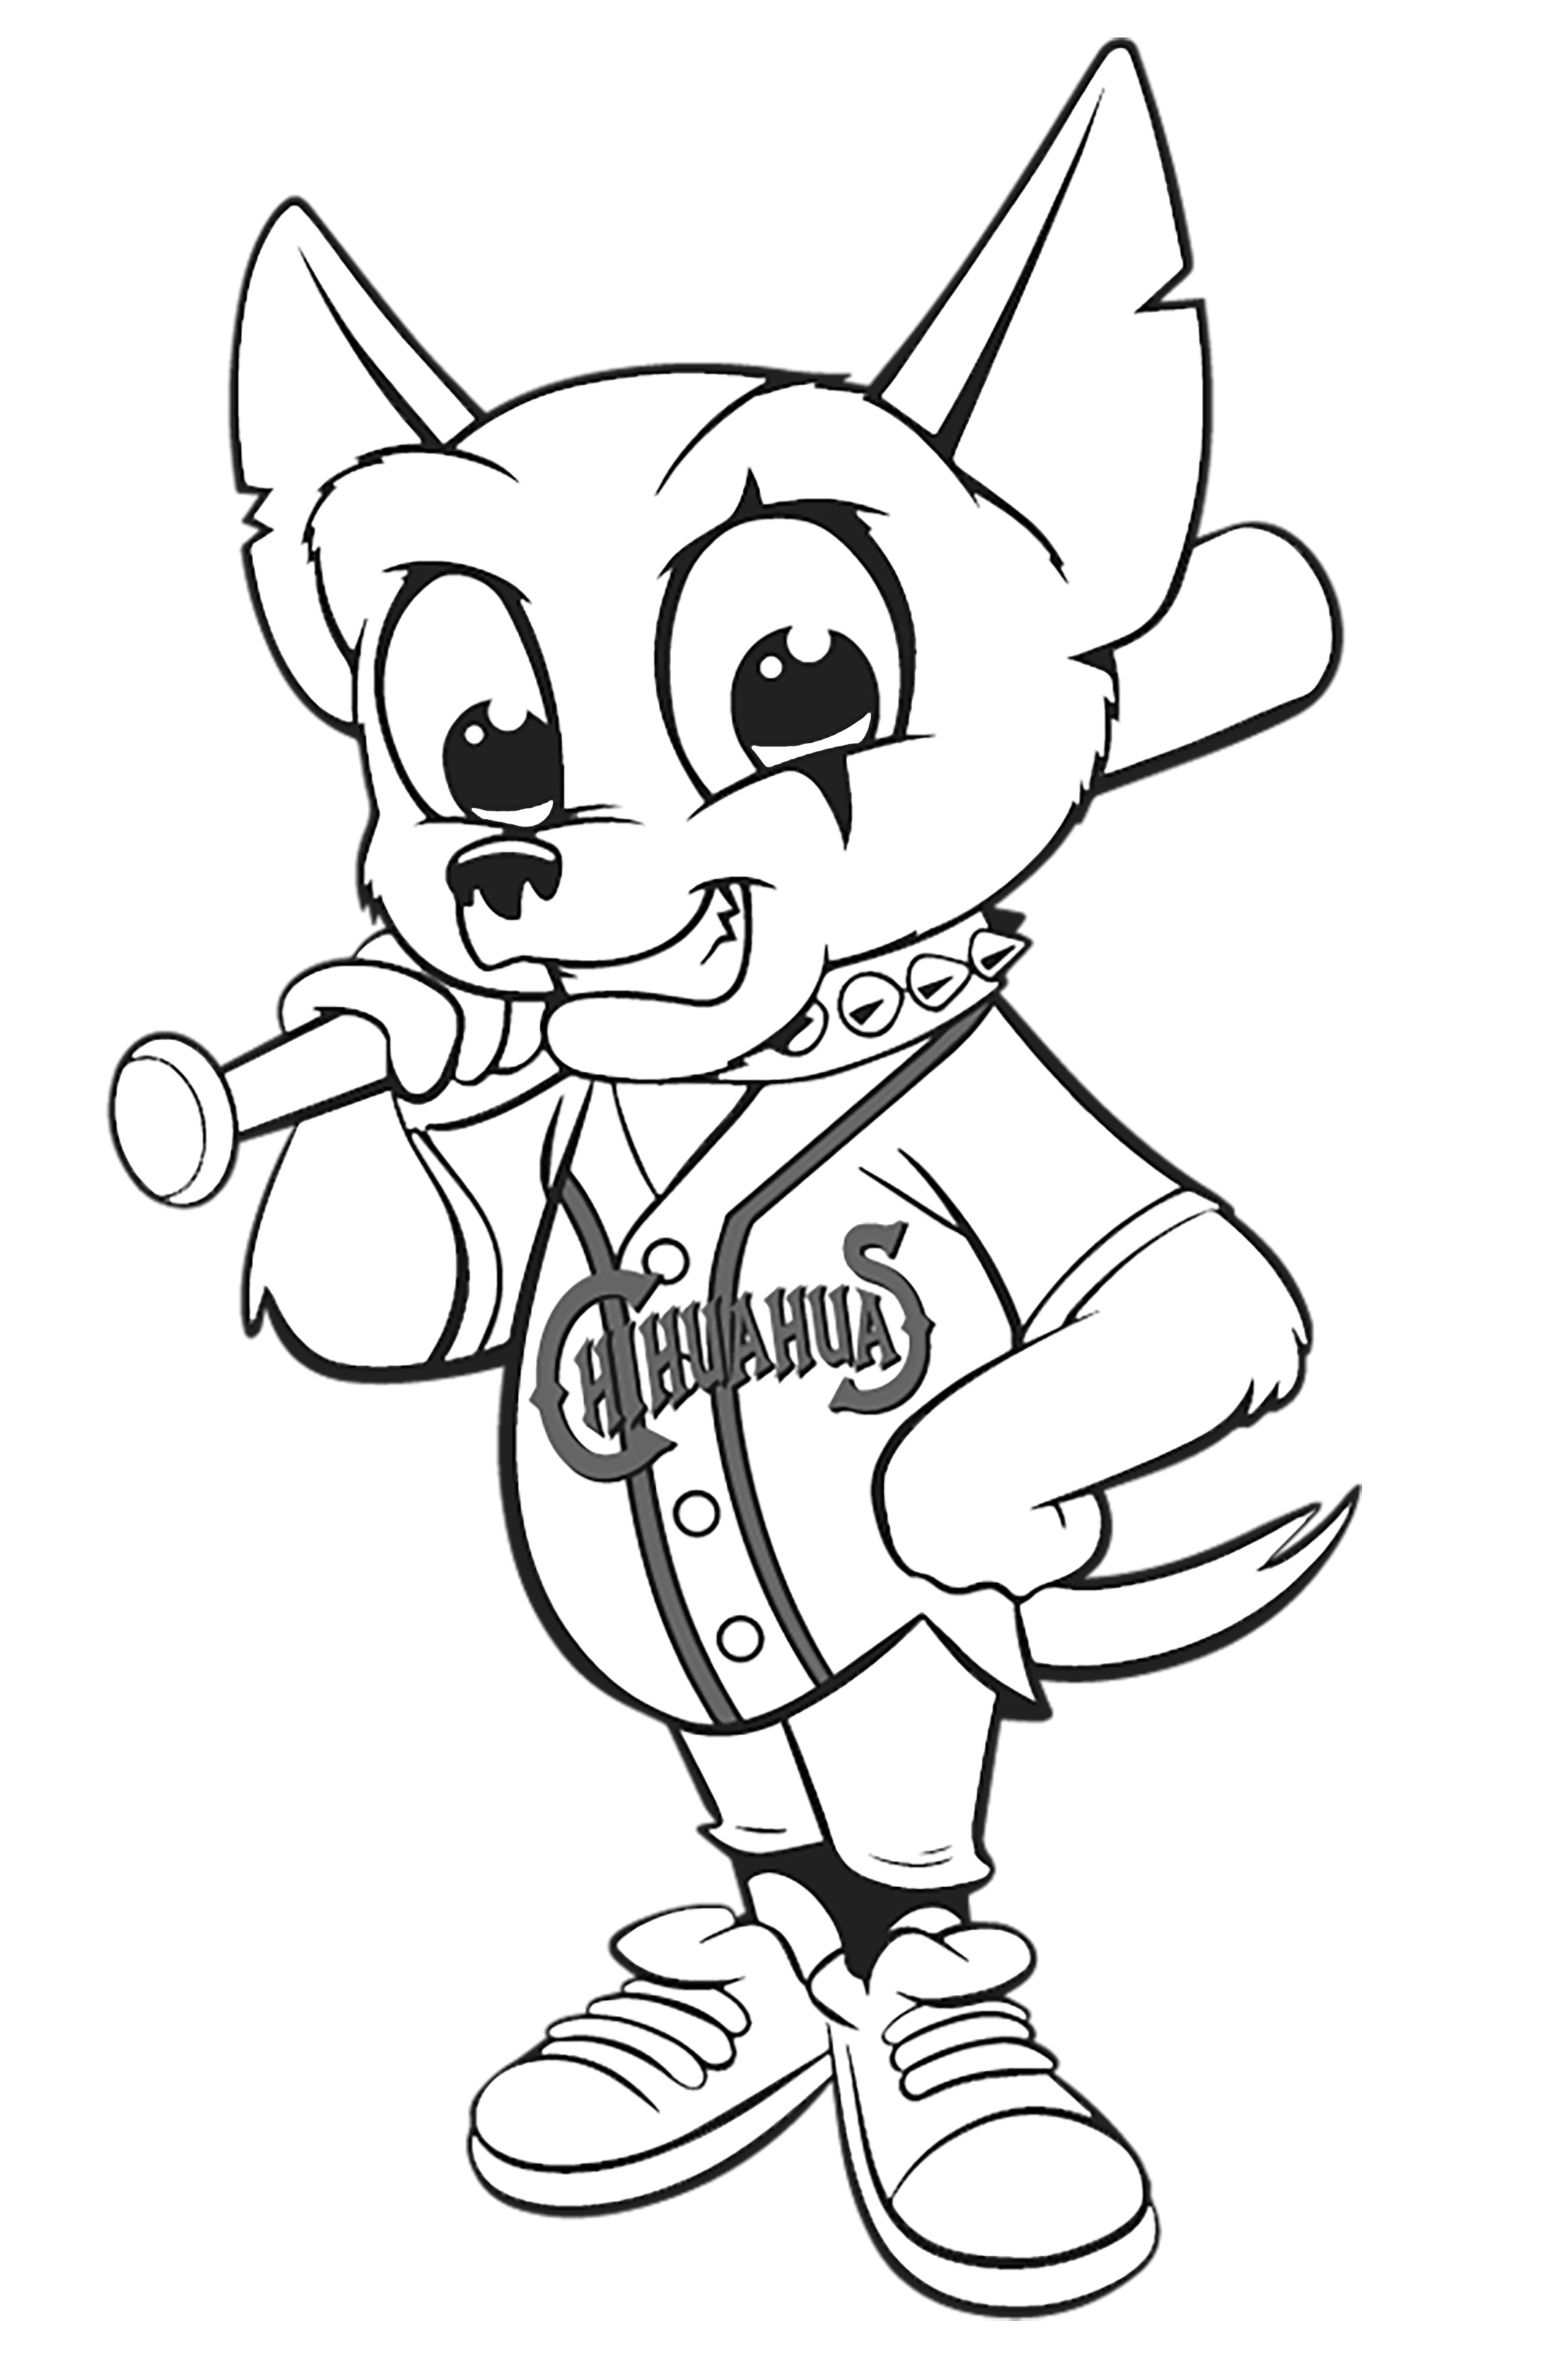 nationals mascot coloring pages - photo#21